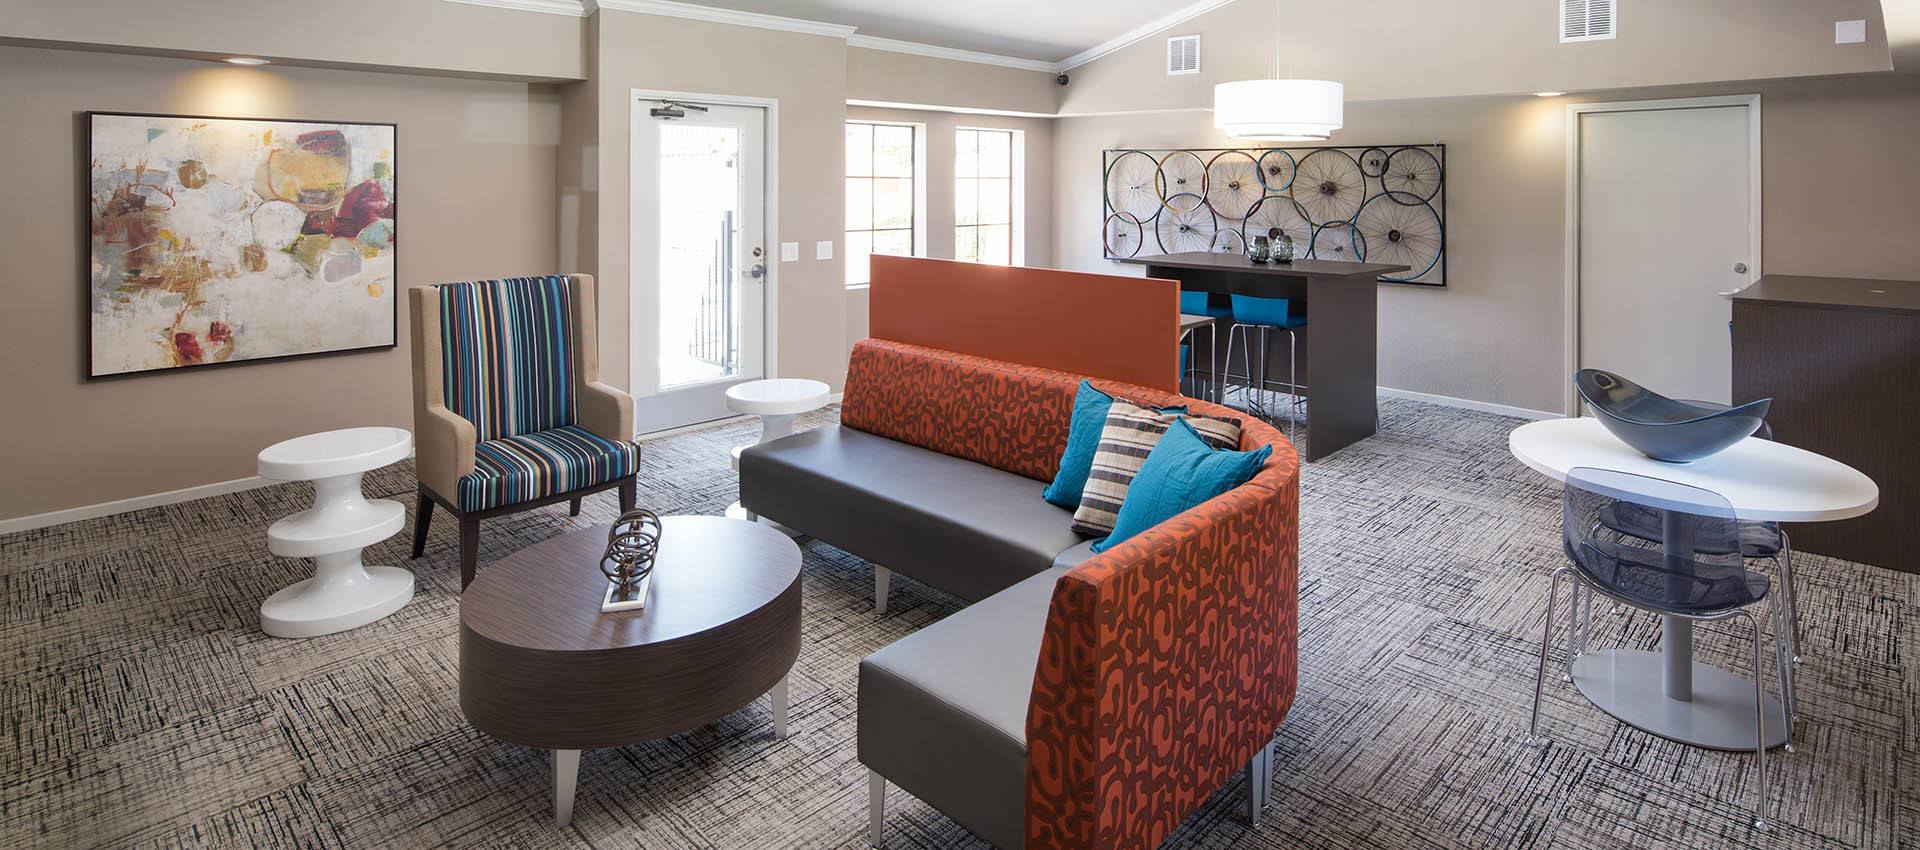 Resident's Lounge at The Highlands Apartment Homes in Grand Terrace